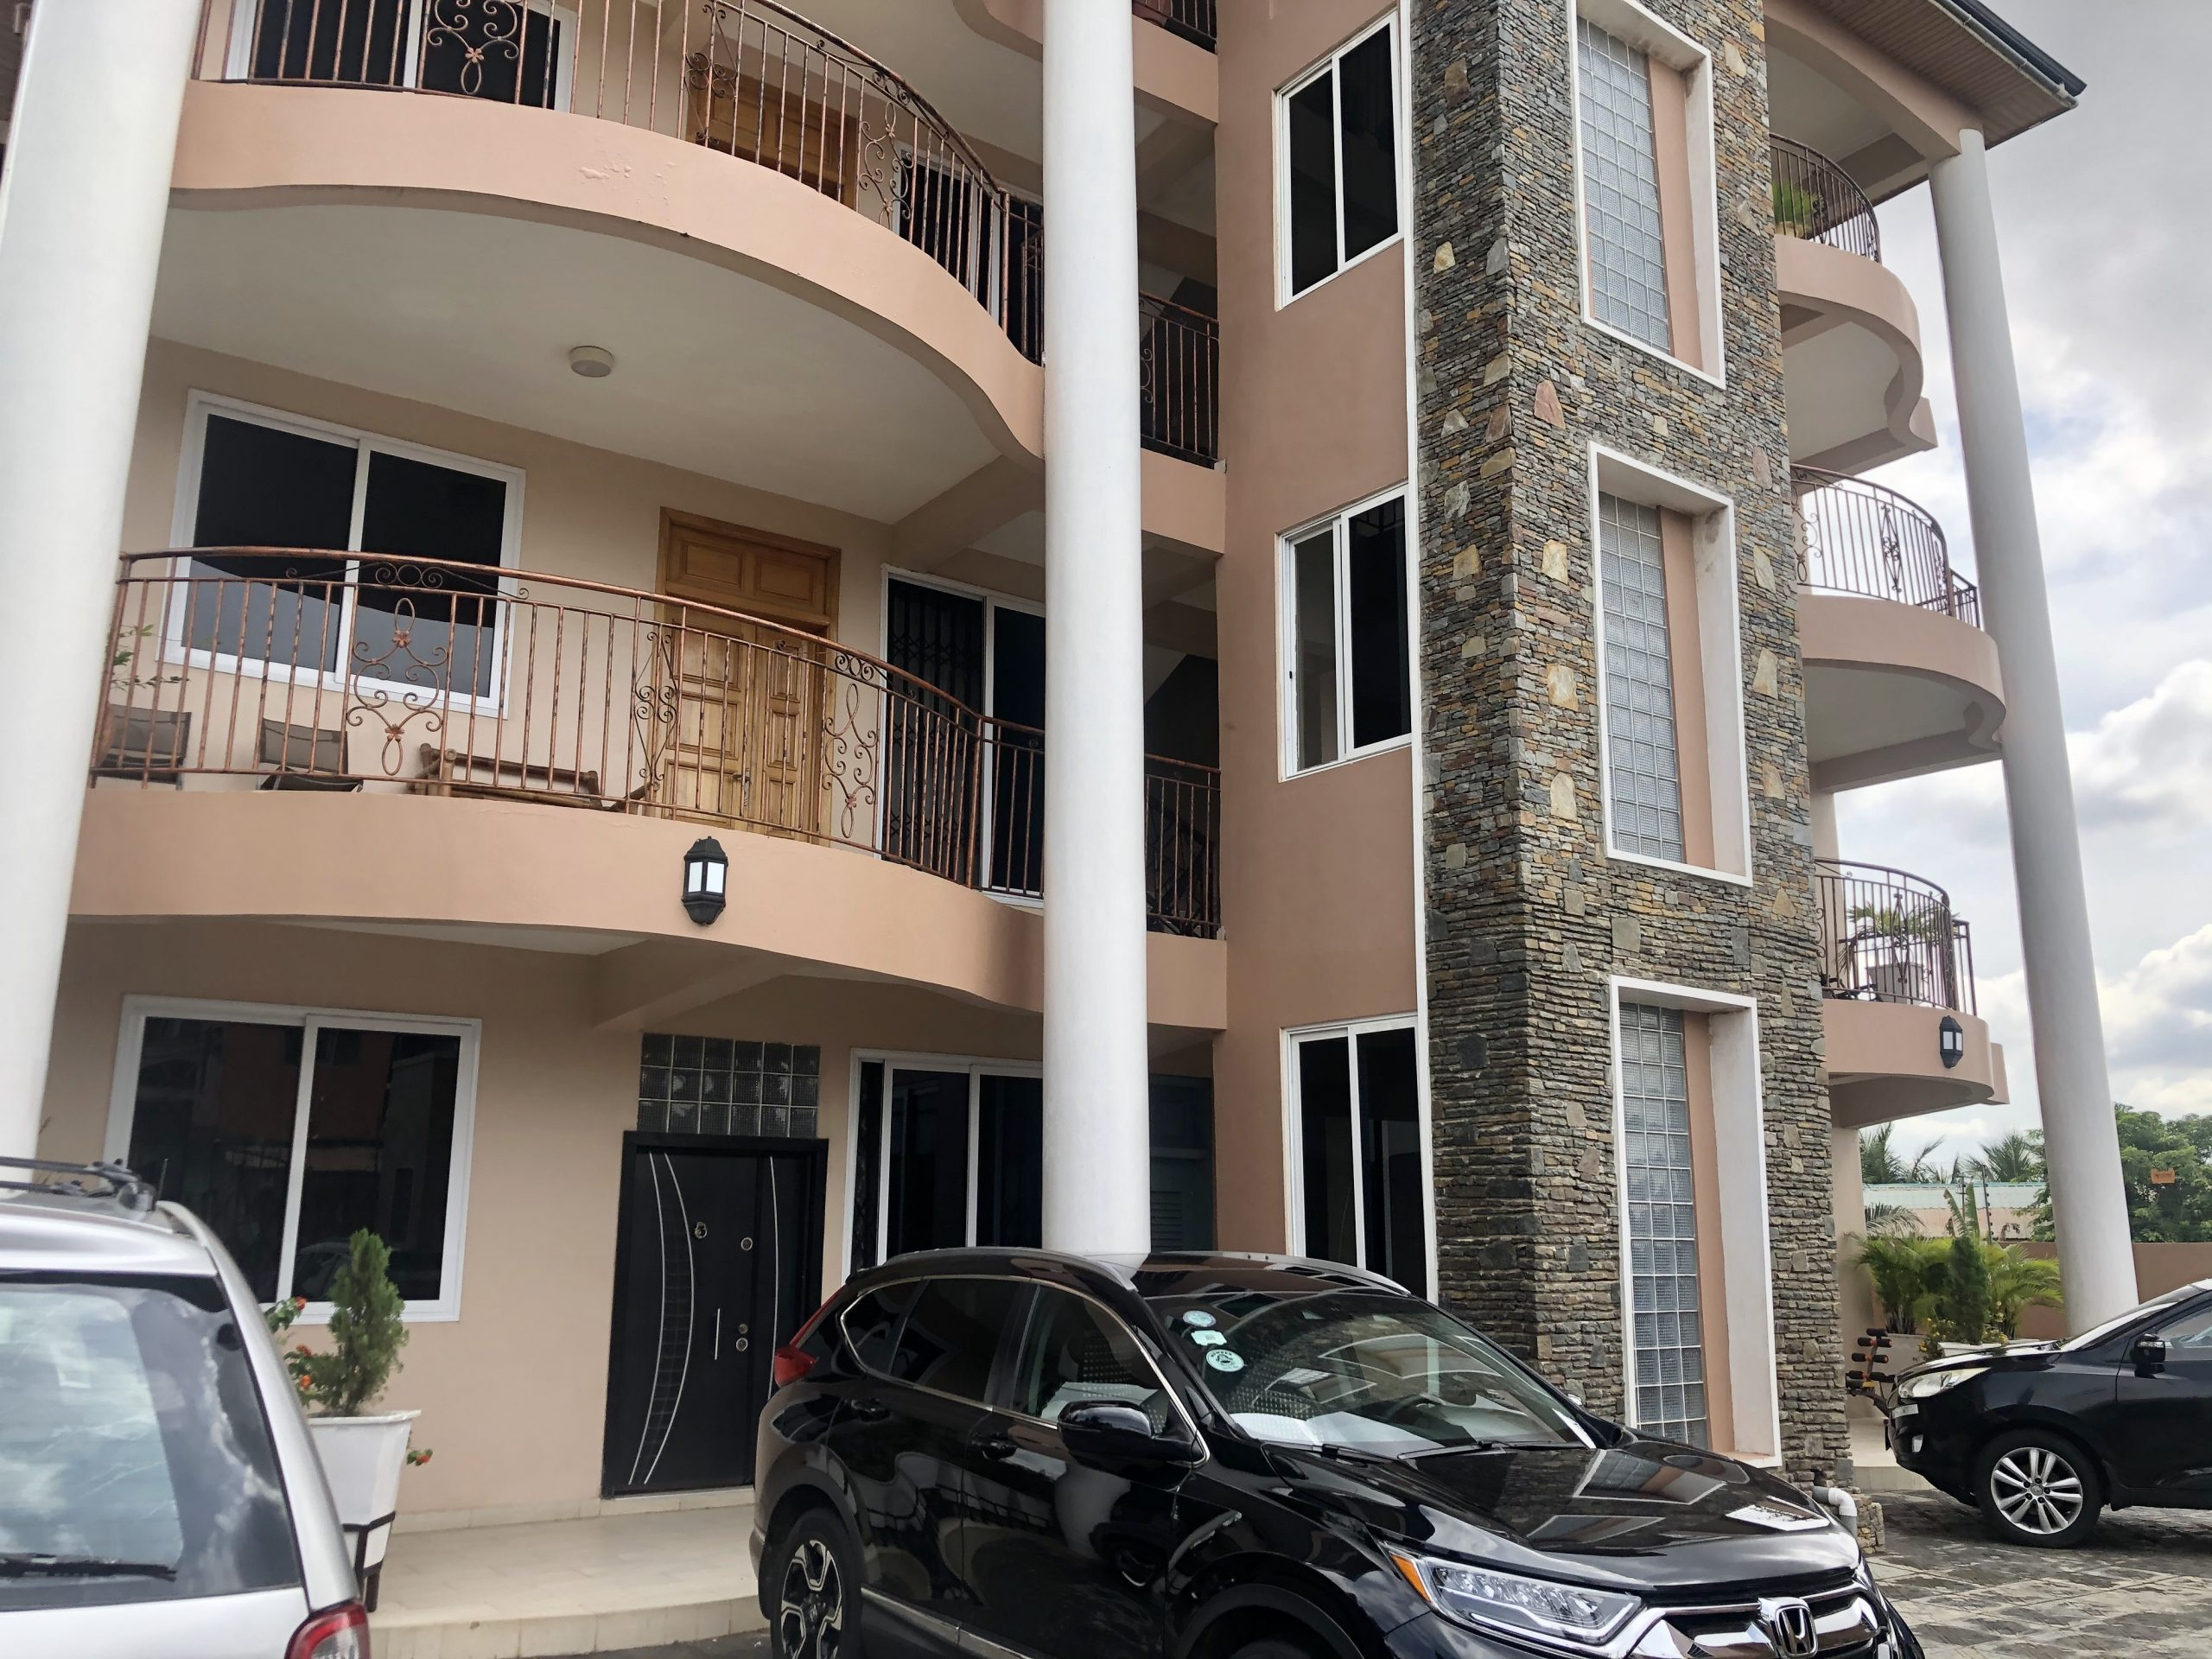 2 BEDROOM UNFURNISHED APARTMENT FOR RENT IN TSE ADDO (ACCRA)